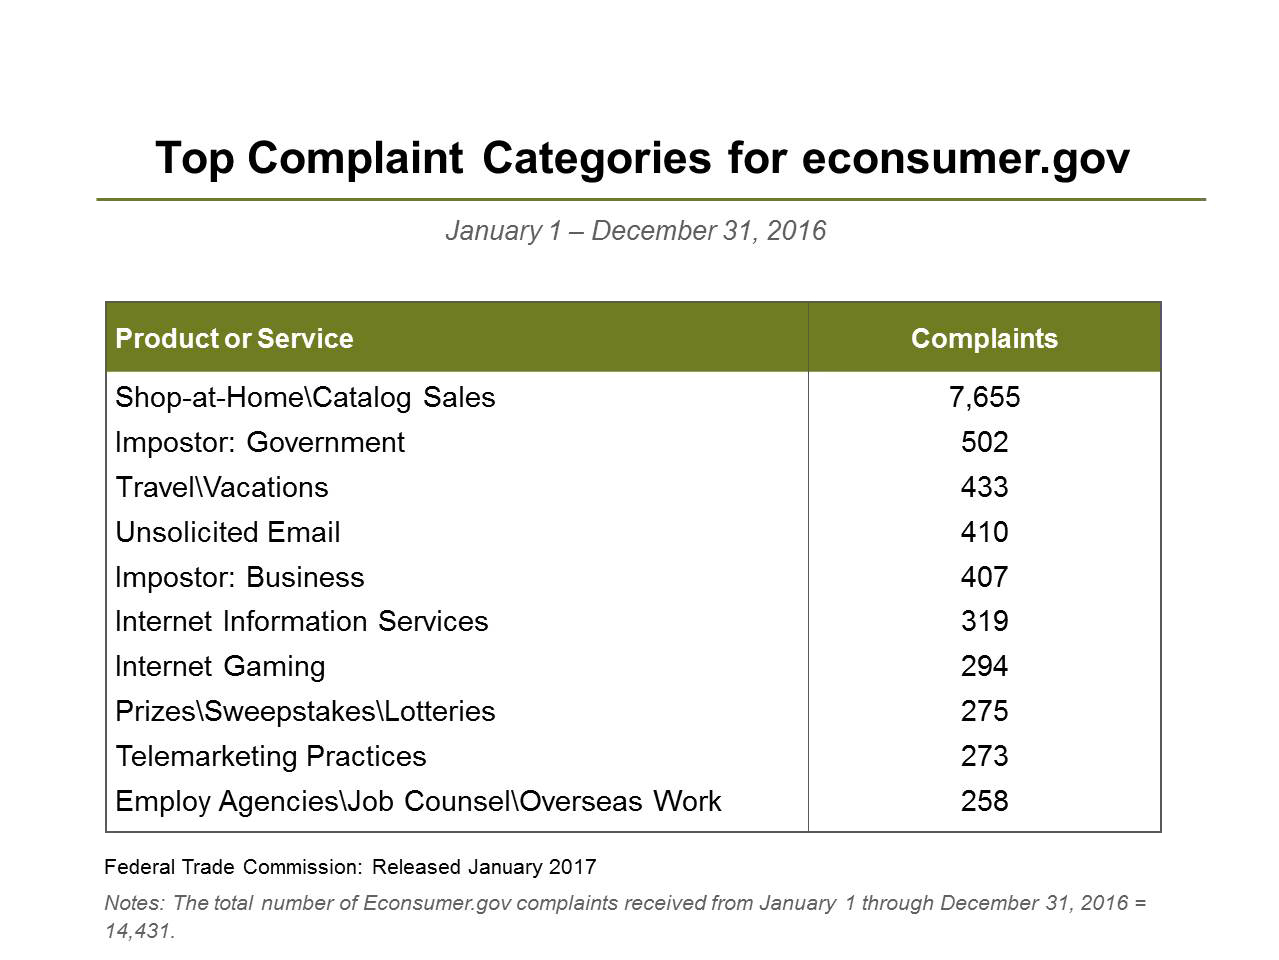 Top Products or Services Complained About